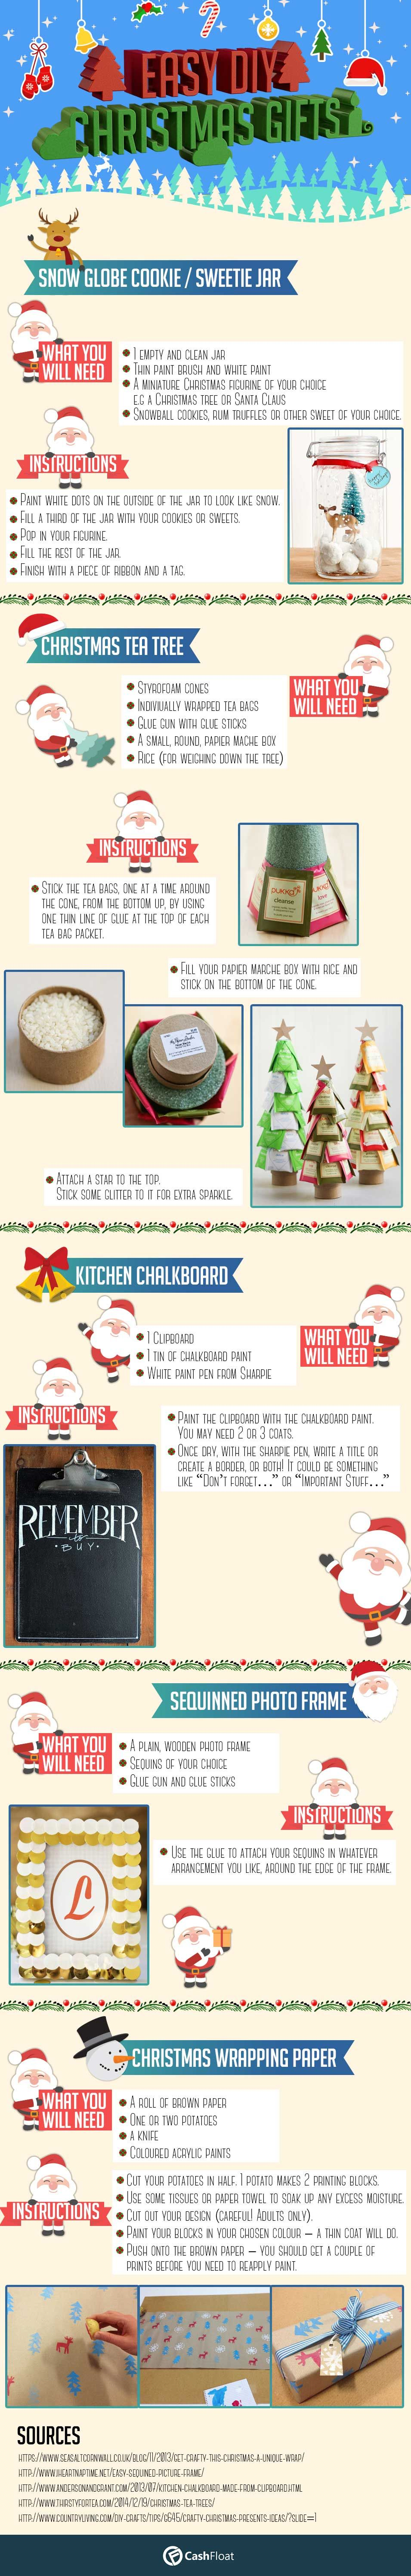 5 Easy DIY Christmas Gifts to Make Crafts for Adults